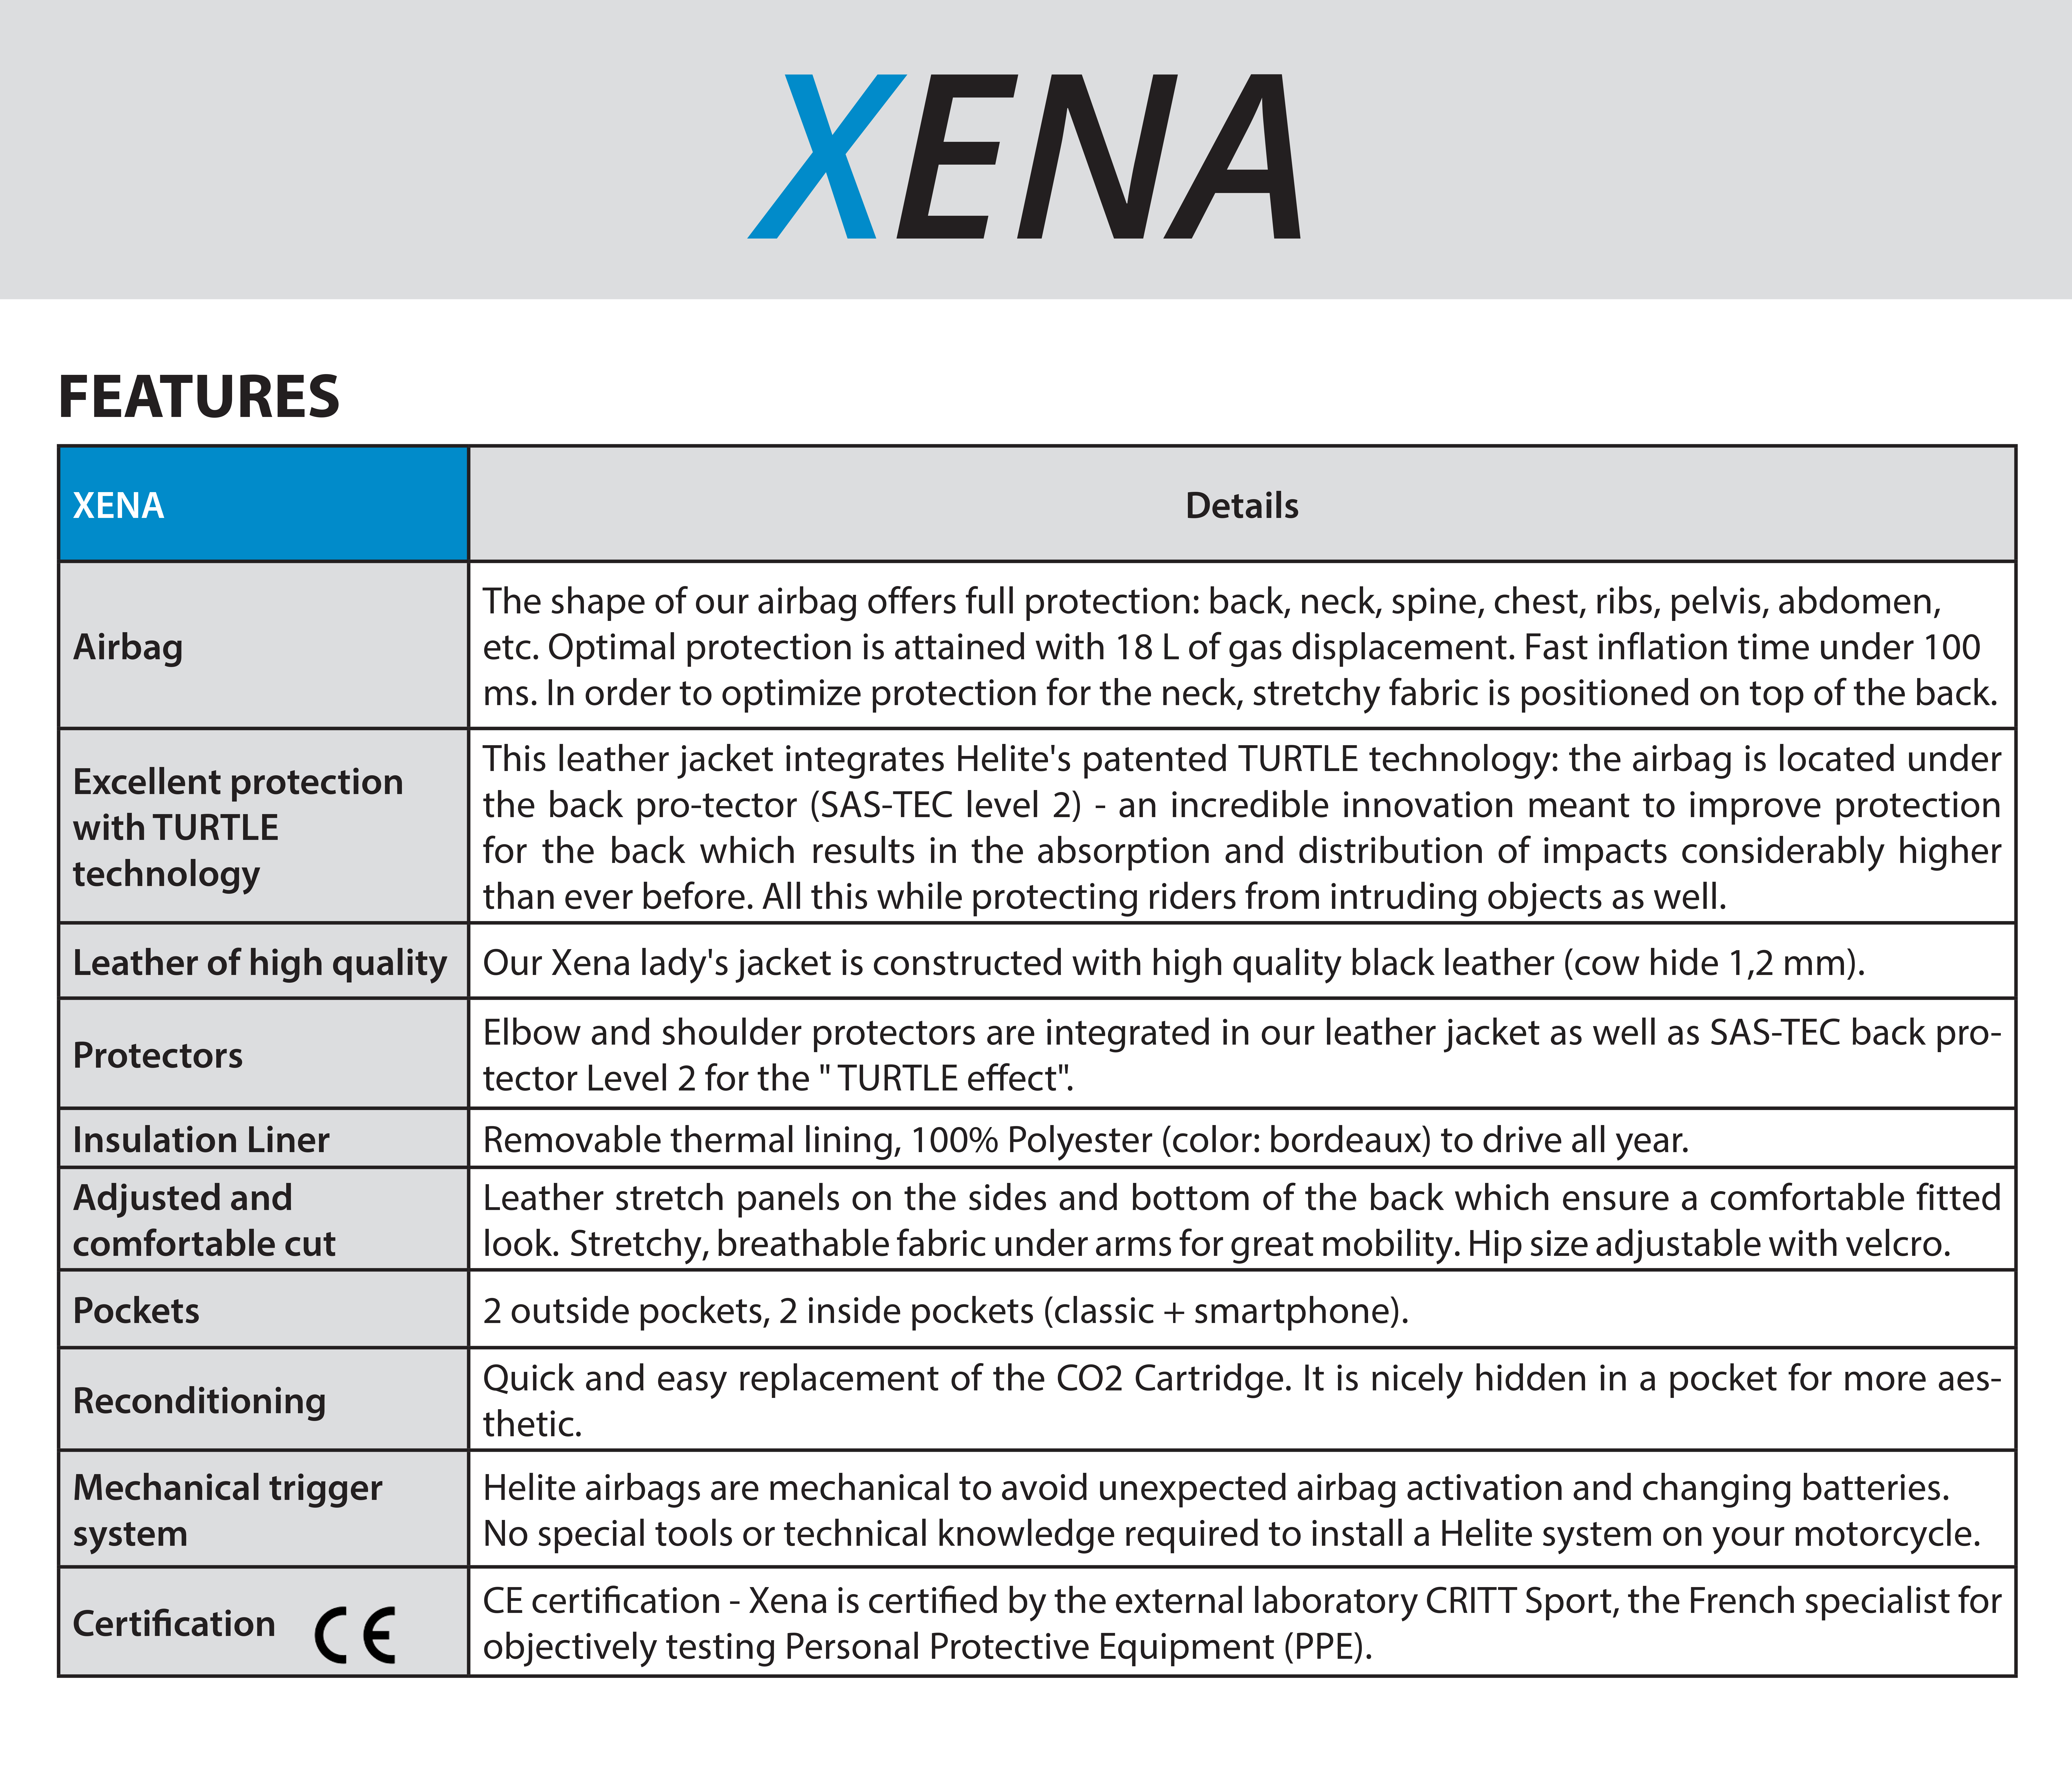 xena-features-website.jpg